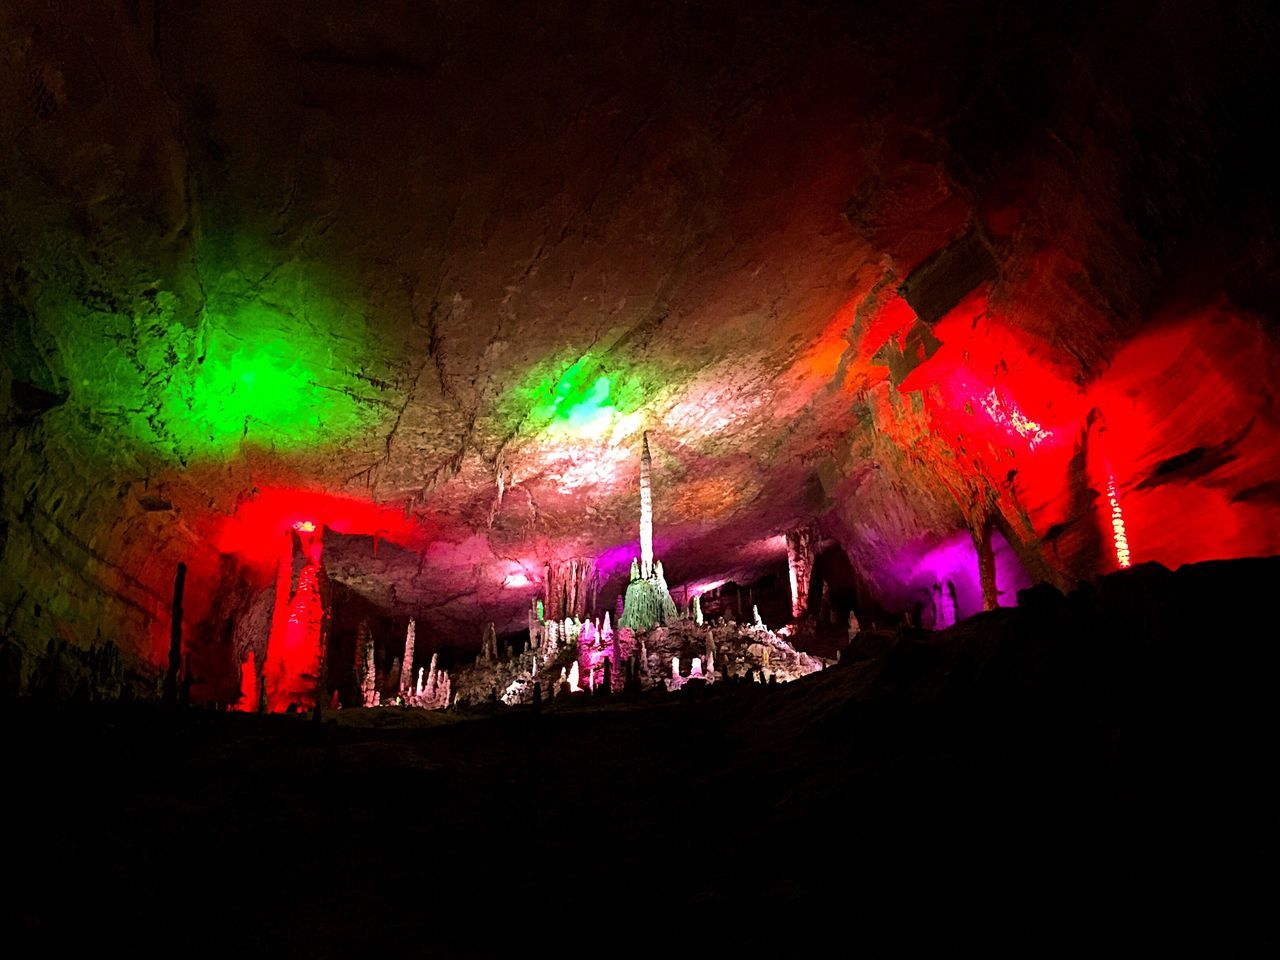 Colors and lights in cave Cave Rocks Rock Formation Colors Colorful Multicolors  Lights Underground HuangLongCave Huanglongdong Hunan China Colour Of Life Indoors  Interior Style Eyeemphoto My Favorite Place